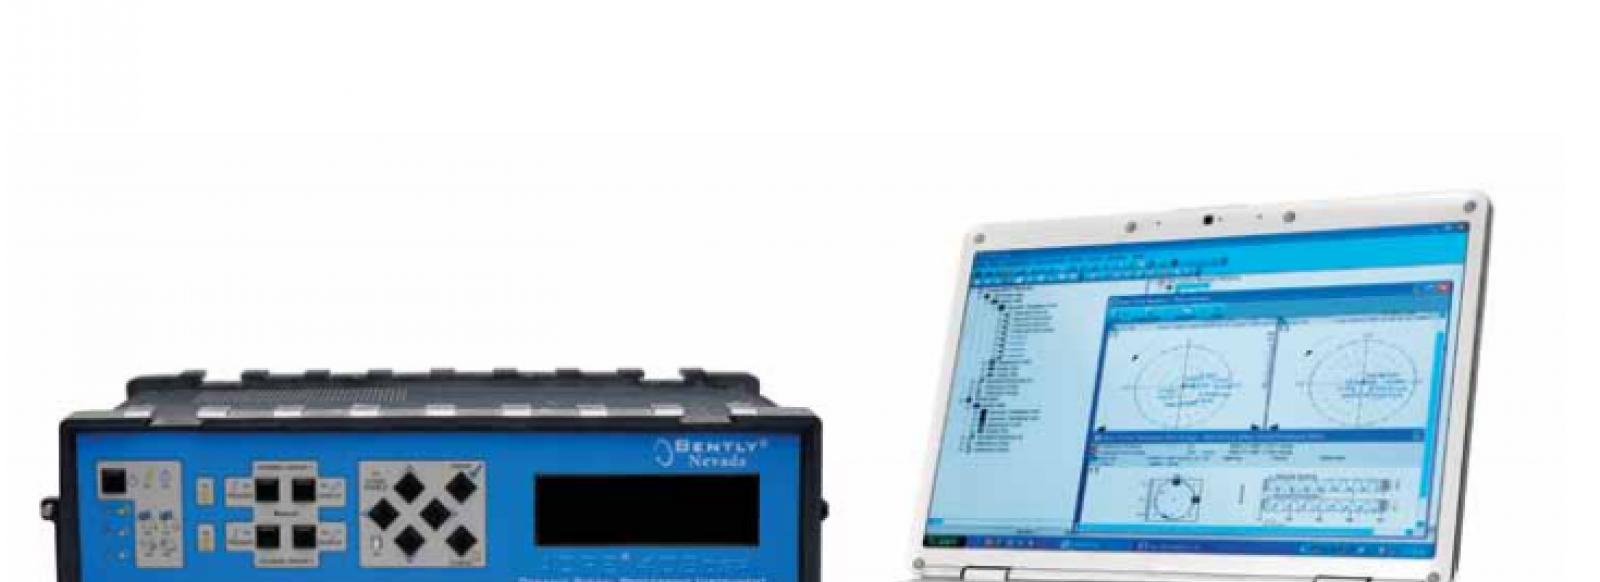 Advanced Diagnostics - ADRE 408 Advanced Data Acquisition System